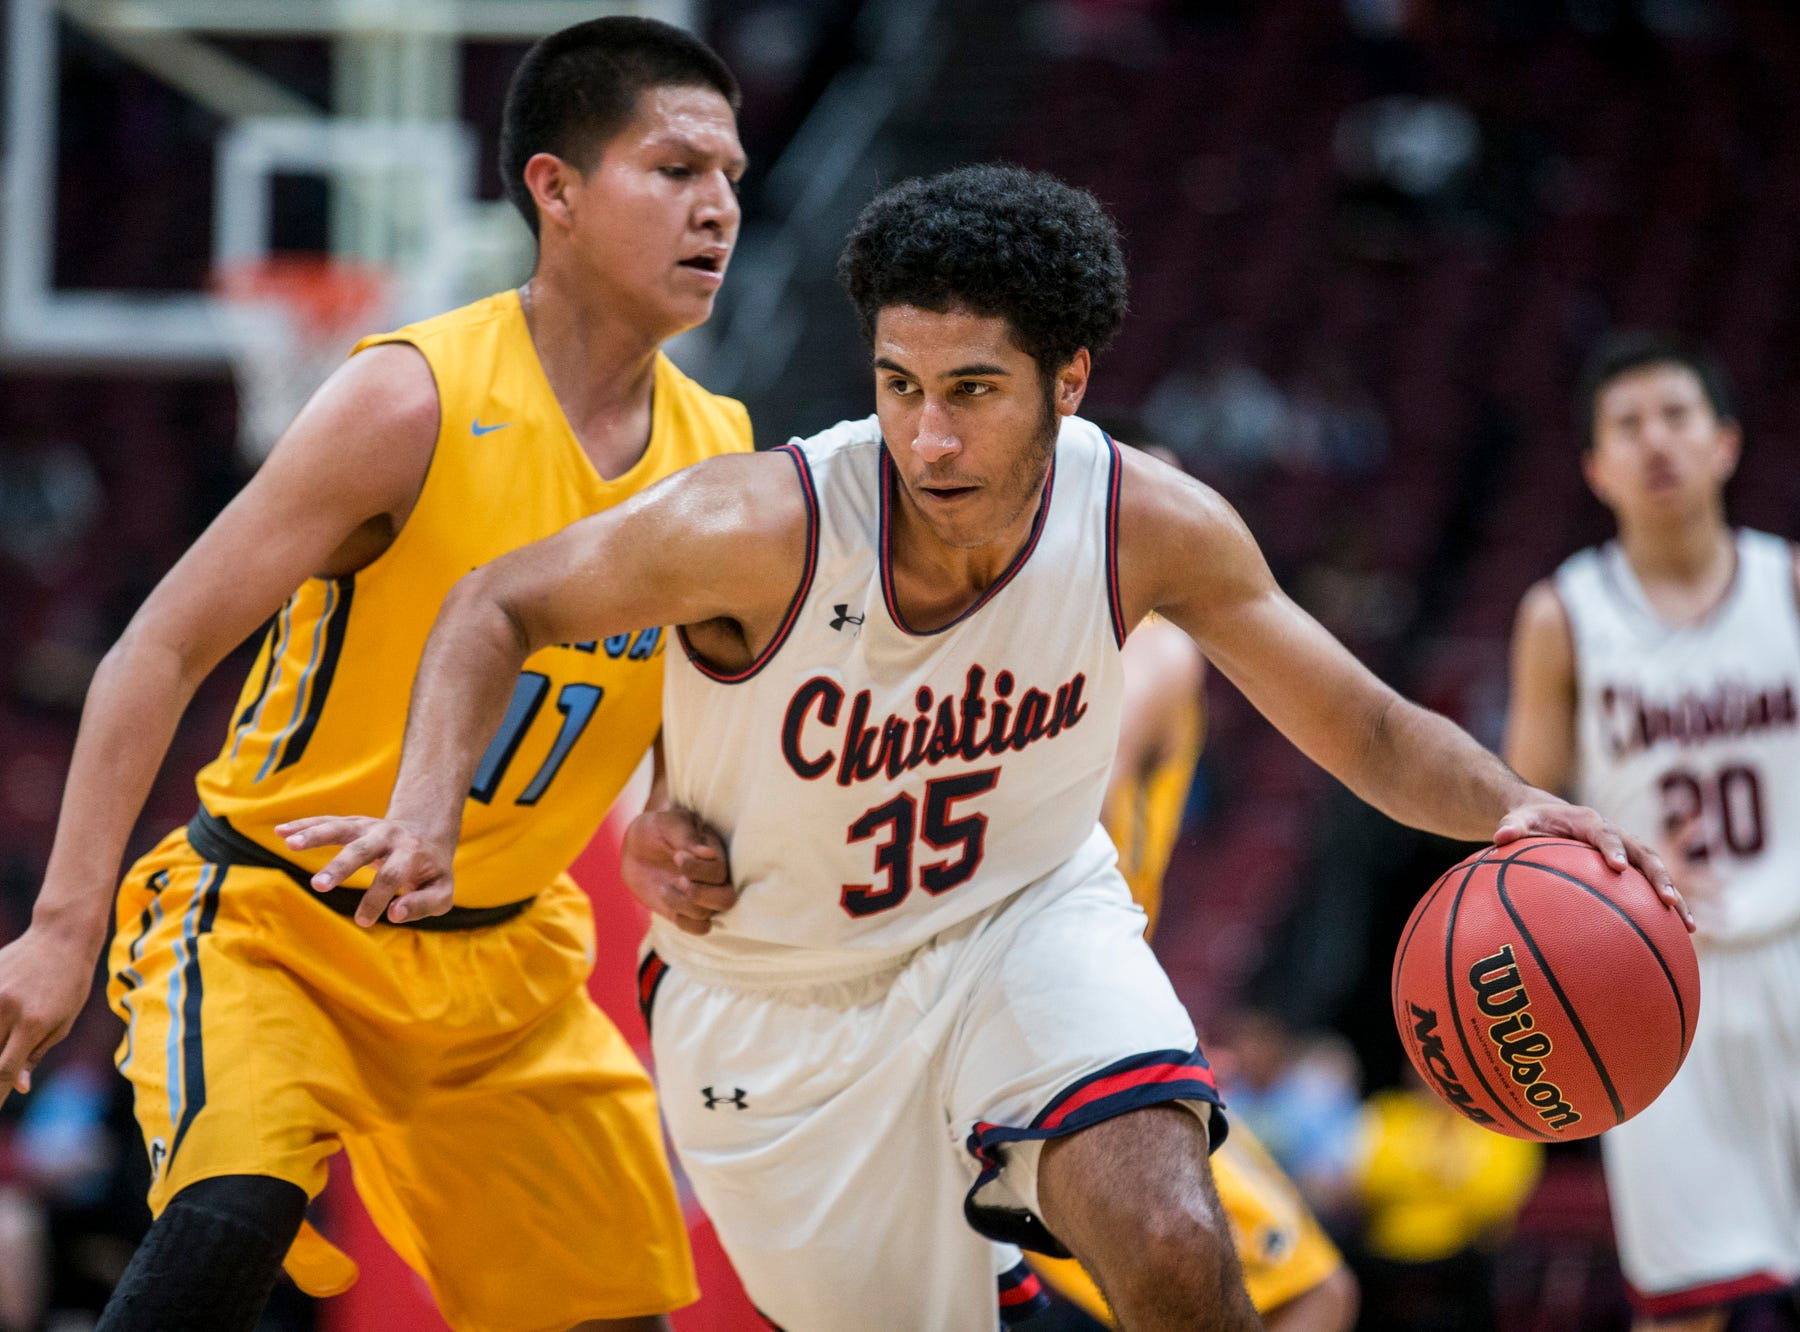 Scottsdale Christian's Darius Whitson drives downcourt against Alchesay during the 2A boys basketball championship on Saturday, Feb. 23, 2019, at Gila River Arena in Glendale, Ariz.